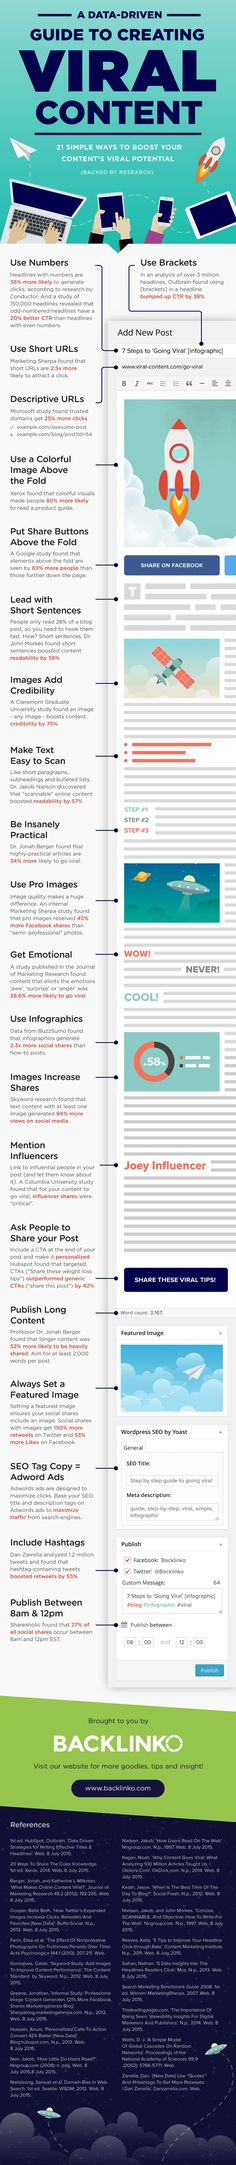 How to Make a Blog Post Go Viral Infographic. Topic: blogger, blogging, online marketing, social media optimization, clickbait, linkbait.